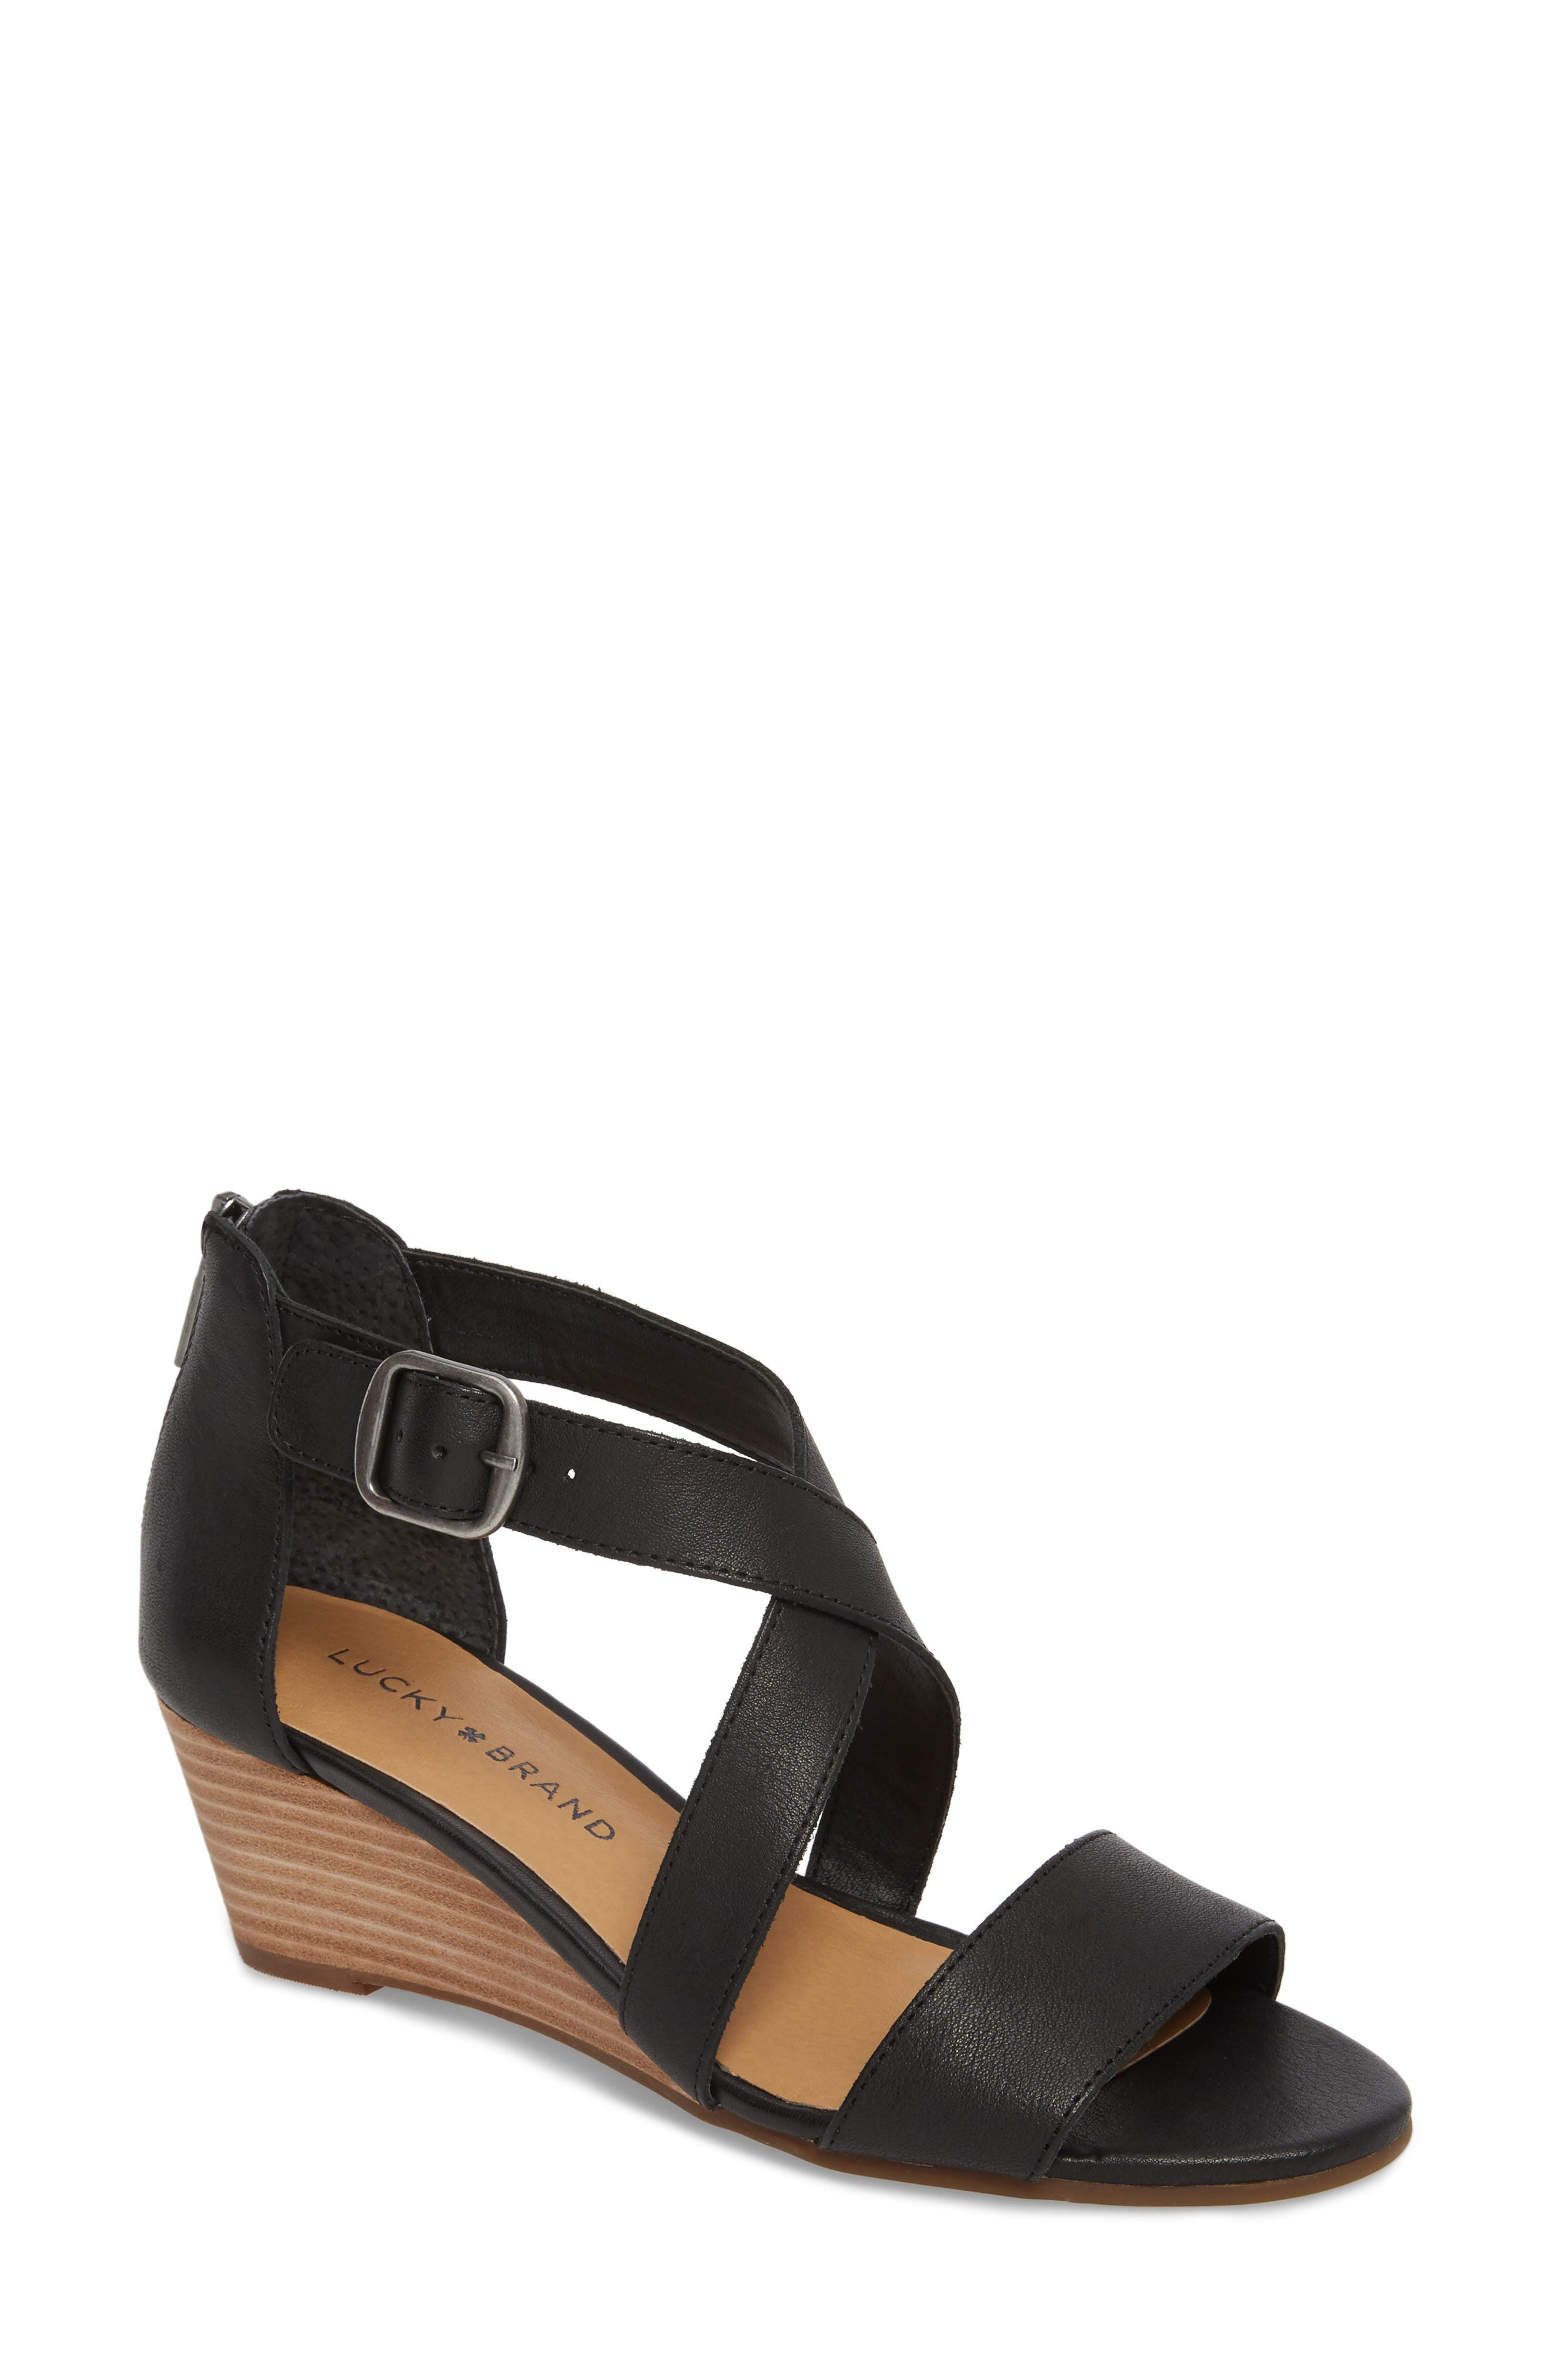 Jestah Wedge Sandal,                             Main thumbnail 1, color,                             Black Leather